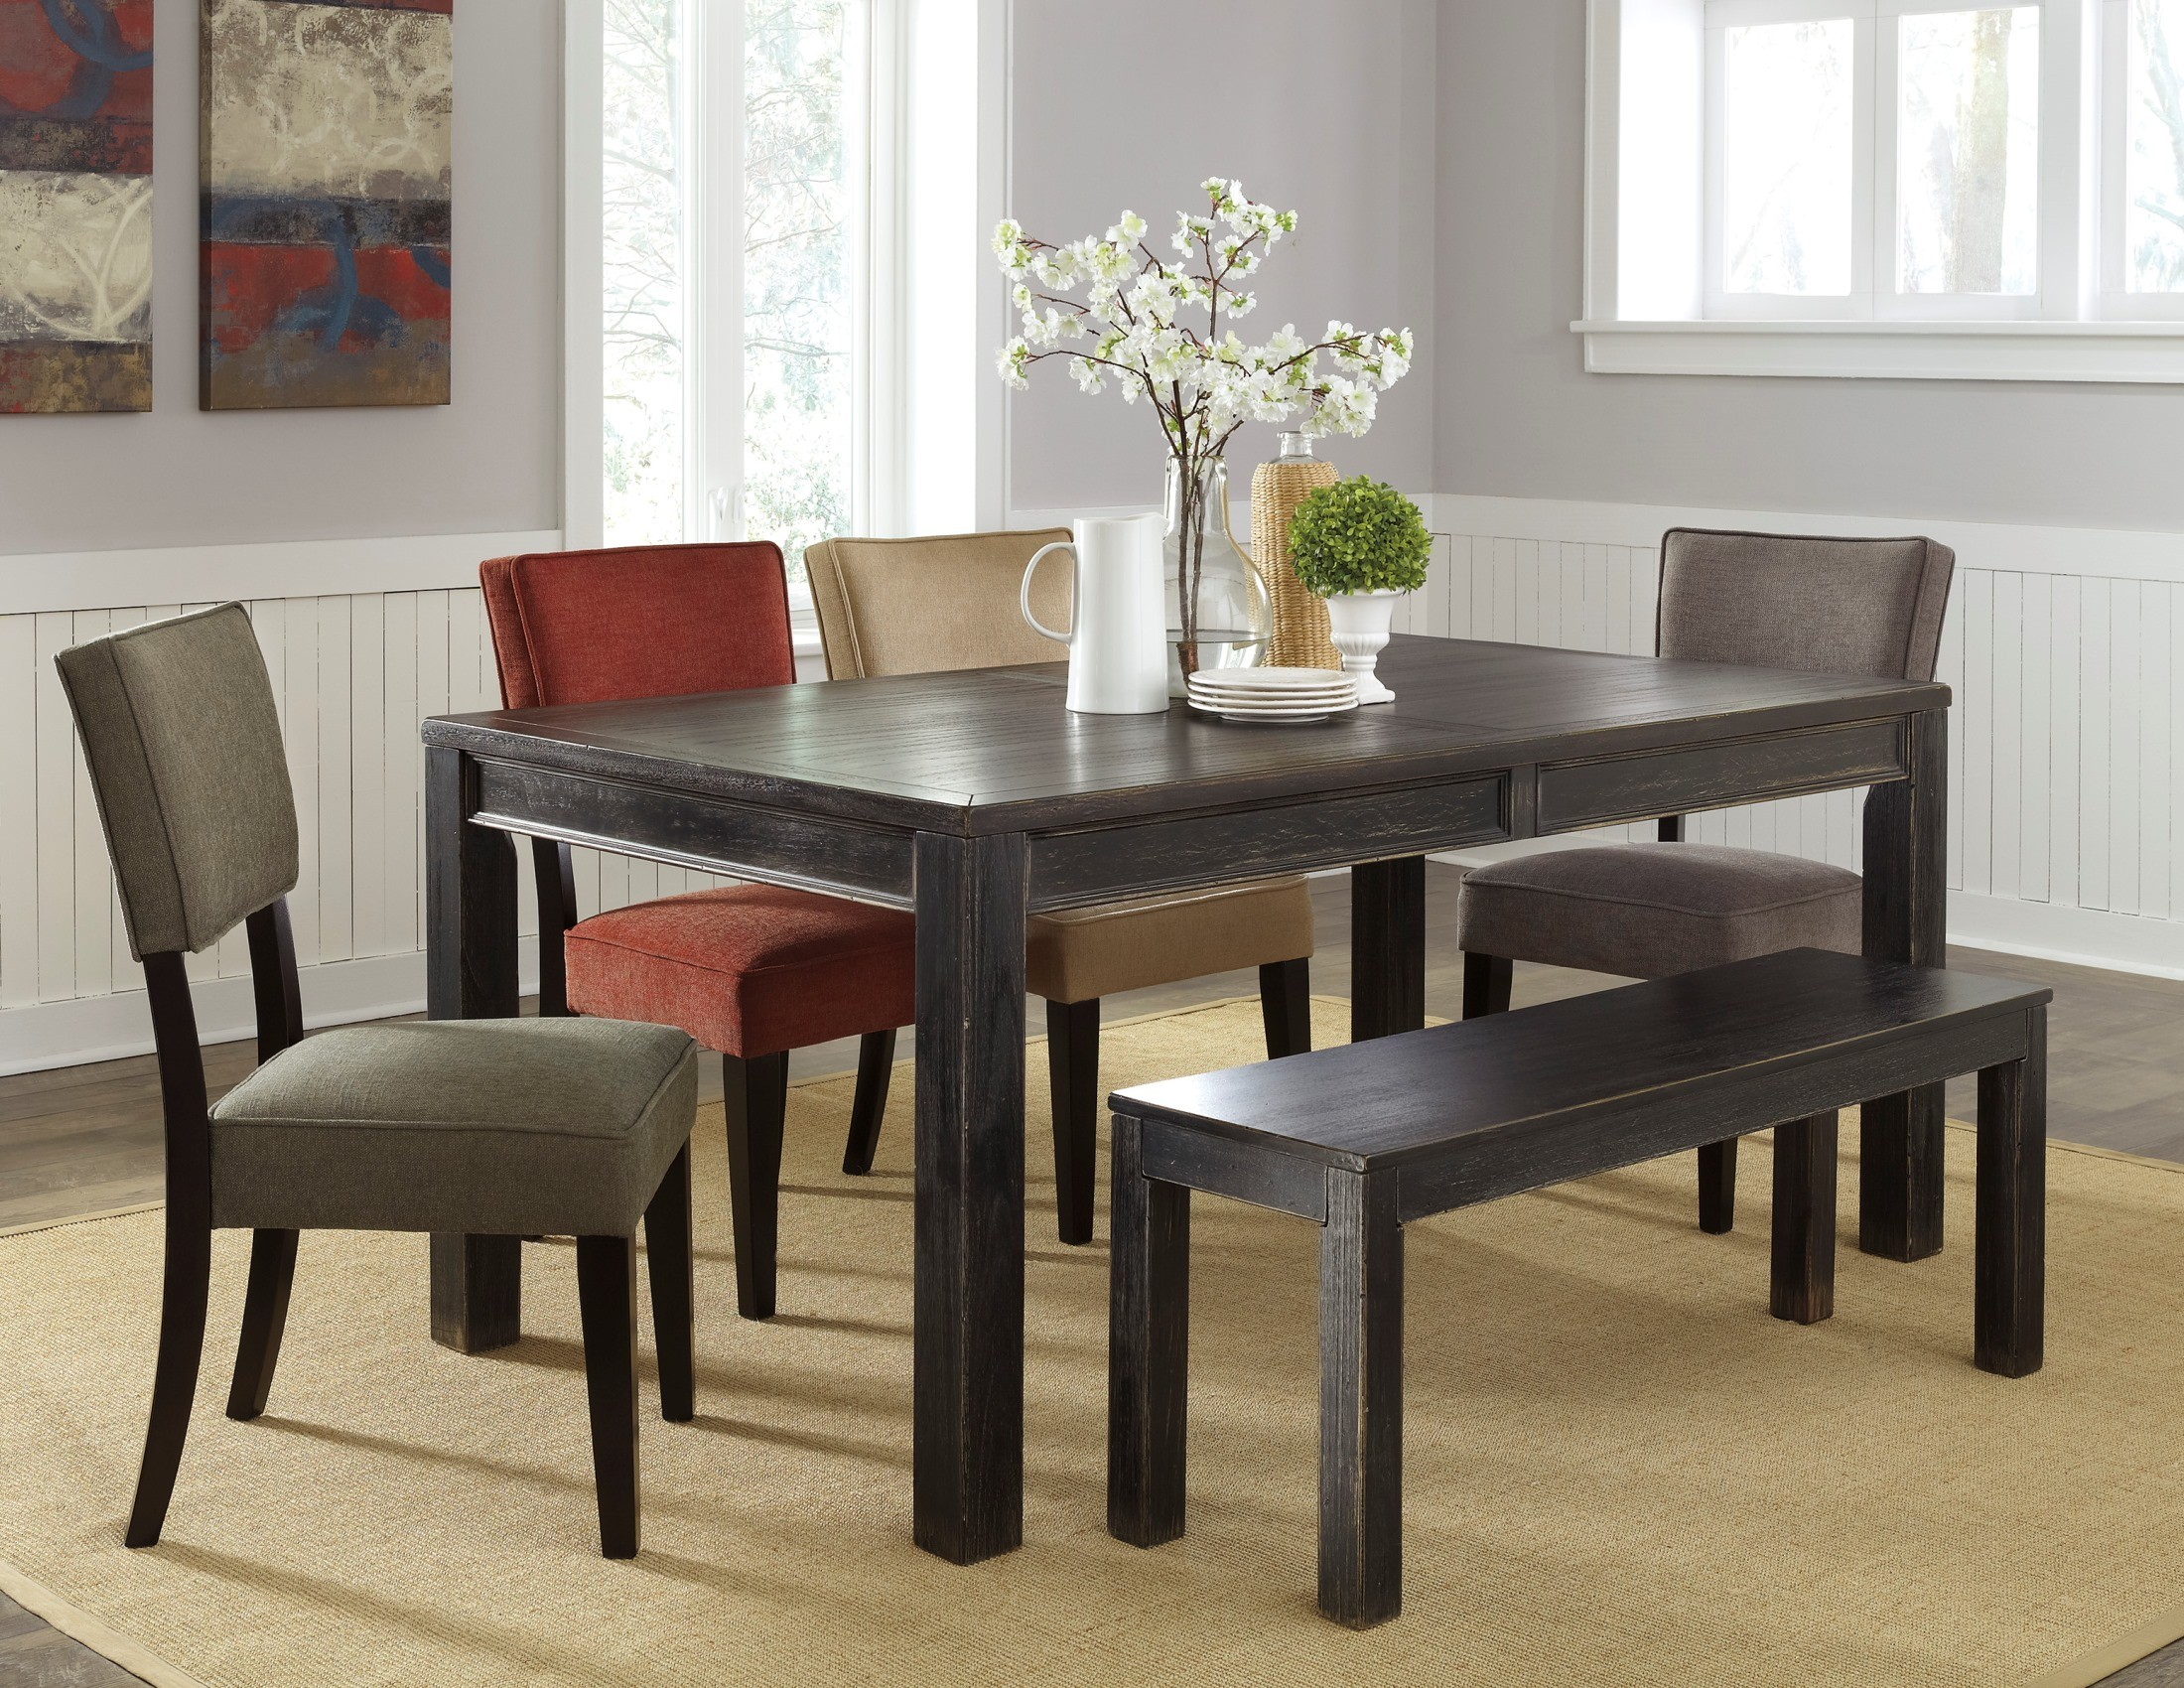 Ashley Dining Table | Ashley Furniture Louisville | Ashley Furniture Rochester Mn